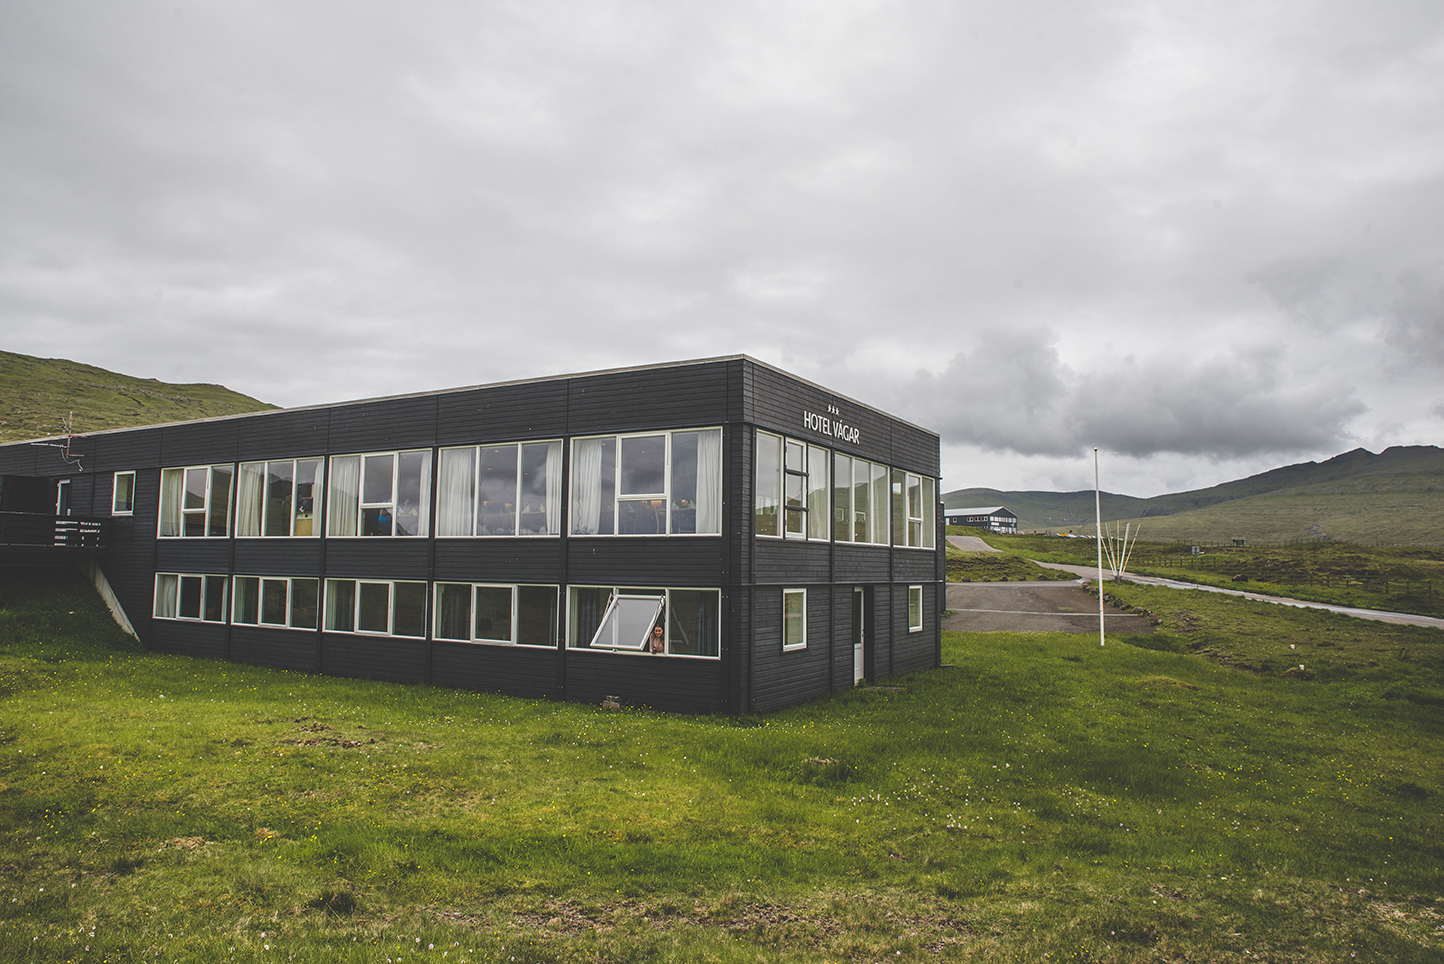 FaroeIslands_Day1_22-6-17_TAL-10.jpg